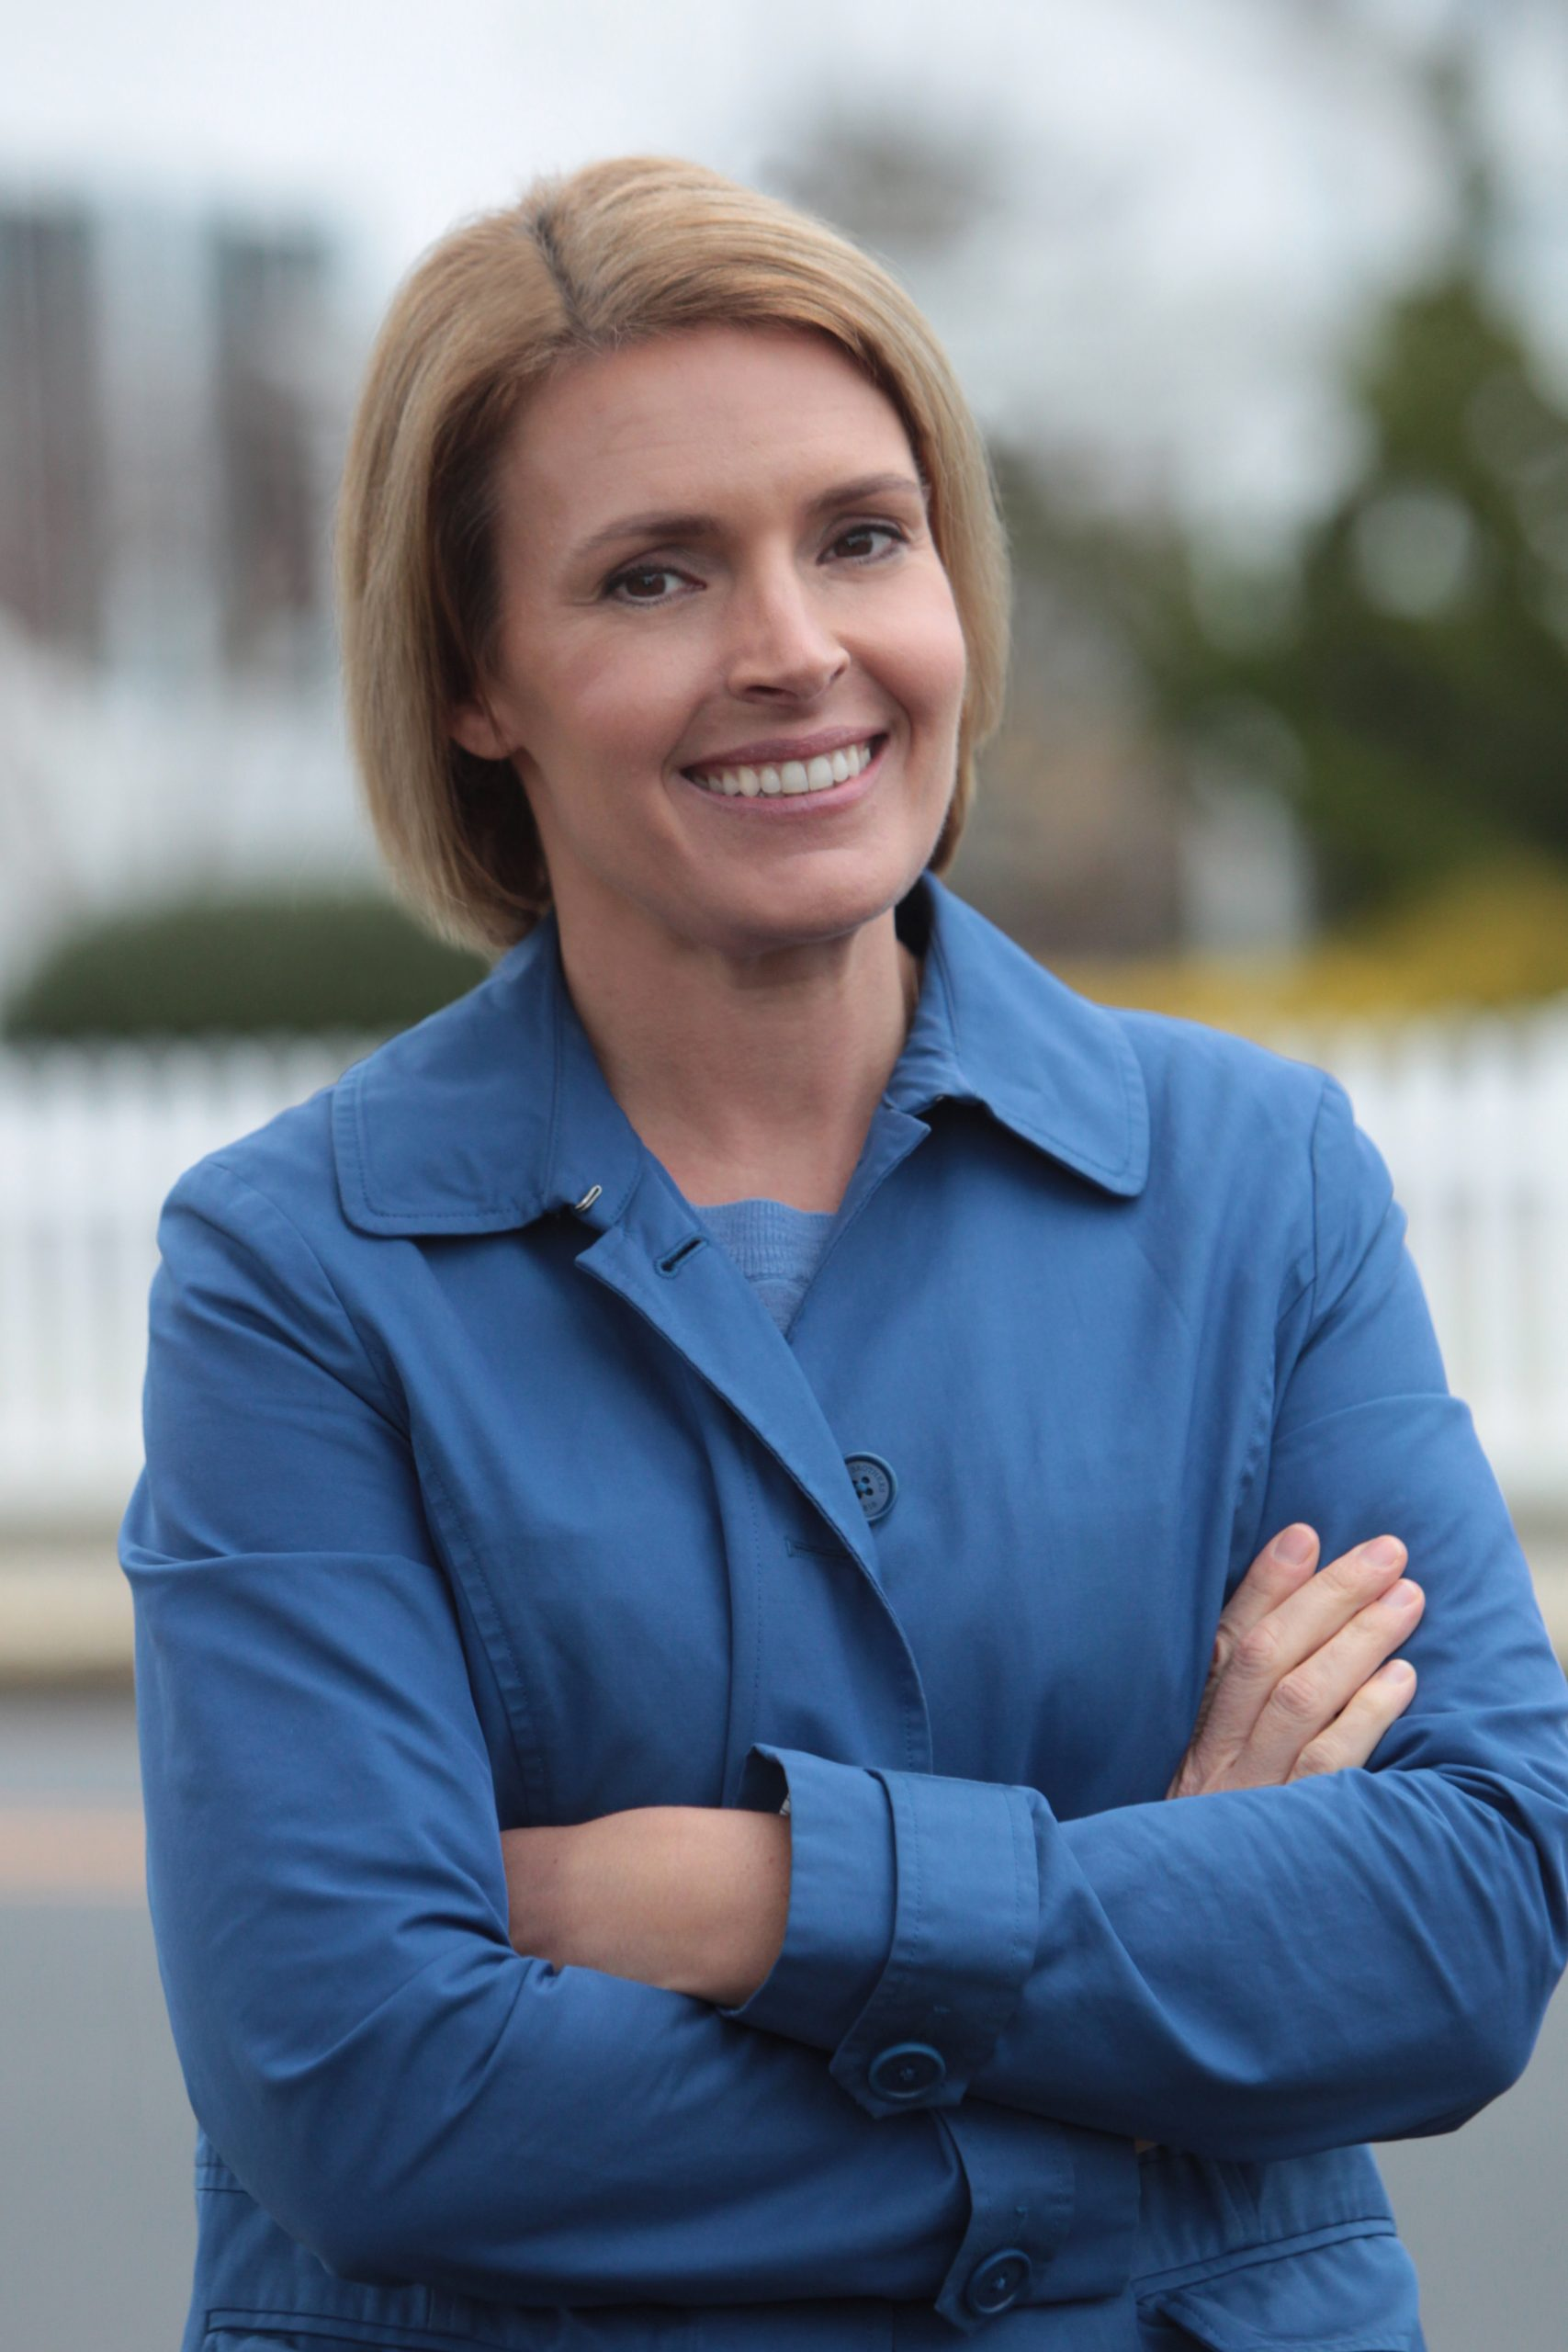 NJ_endorsements-amy-kennedy-headshot